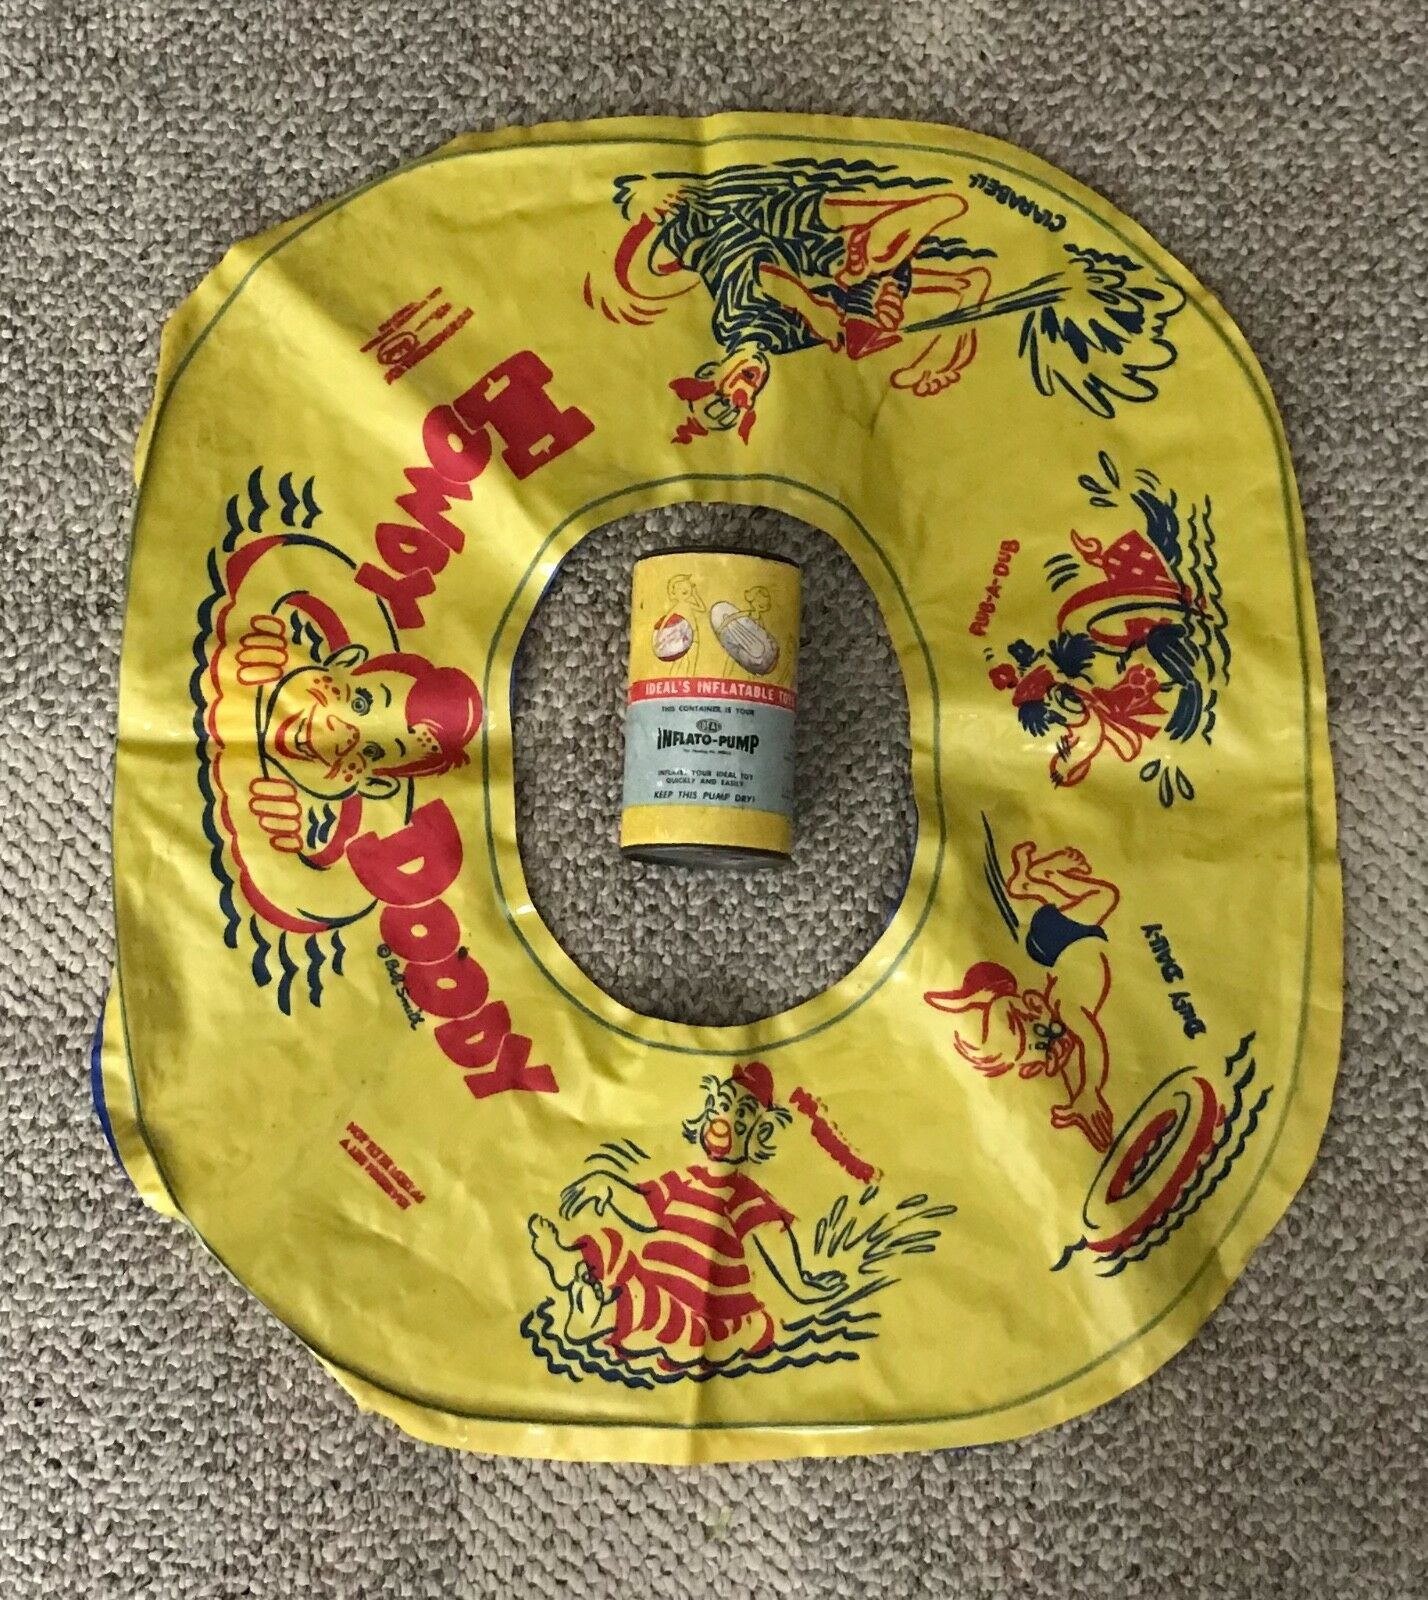 IDEAL  HOWDY DOODY  SWIM RING  FLOATY   C. 1950'S  WITH INFLATO-PUMP